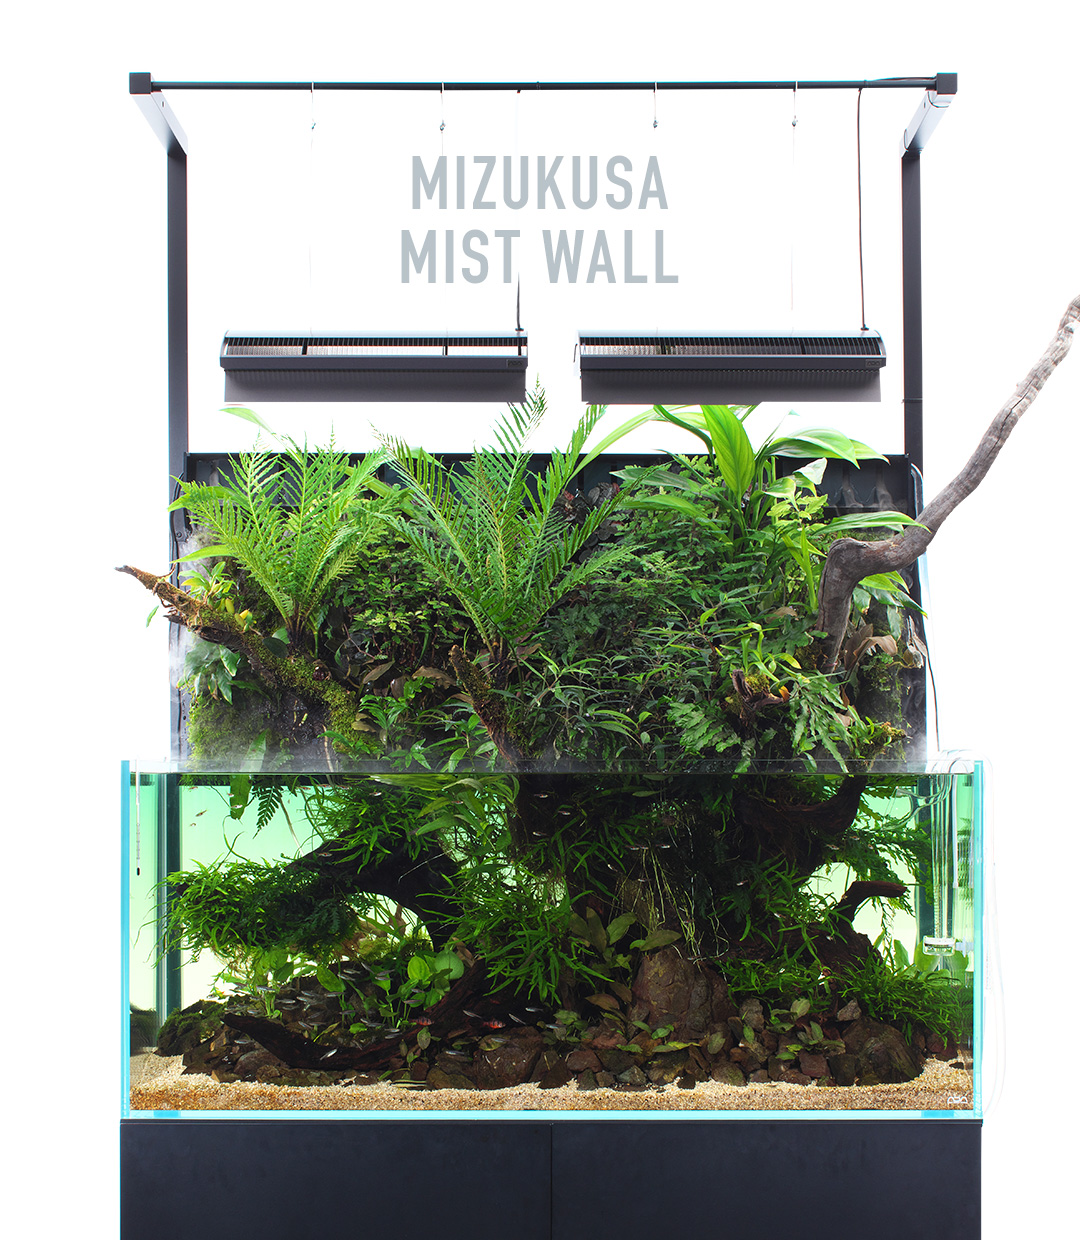 MIZUKUSA MIST WALL 'The Latest System to Make Tropical Plants Thrive'